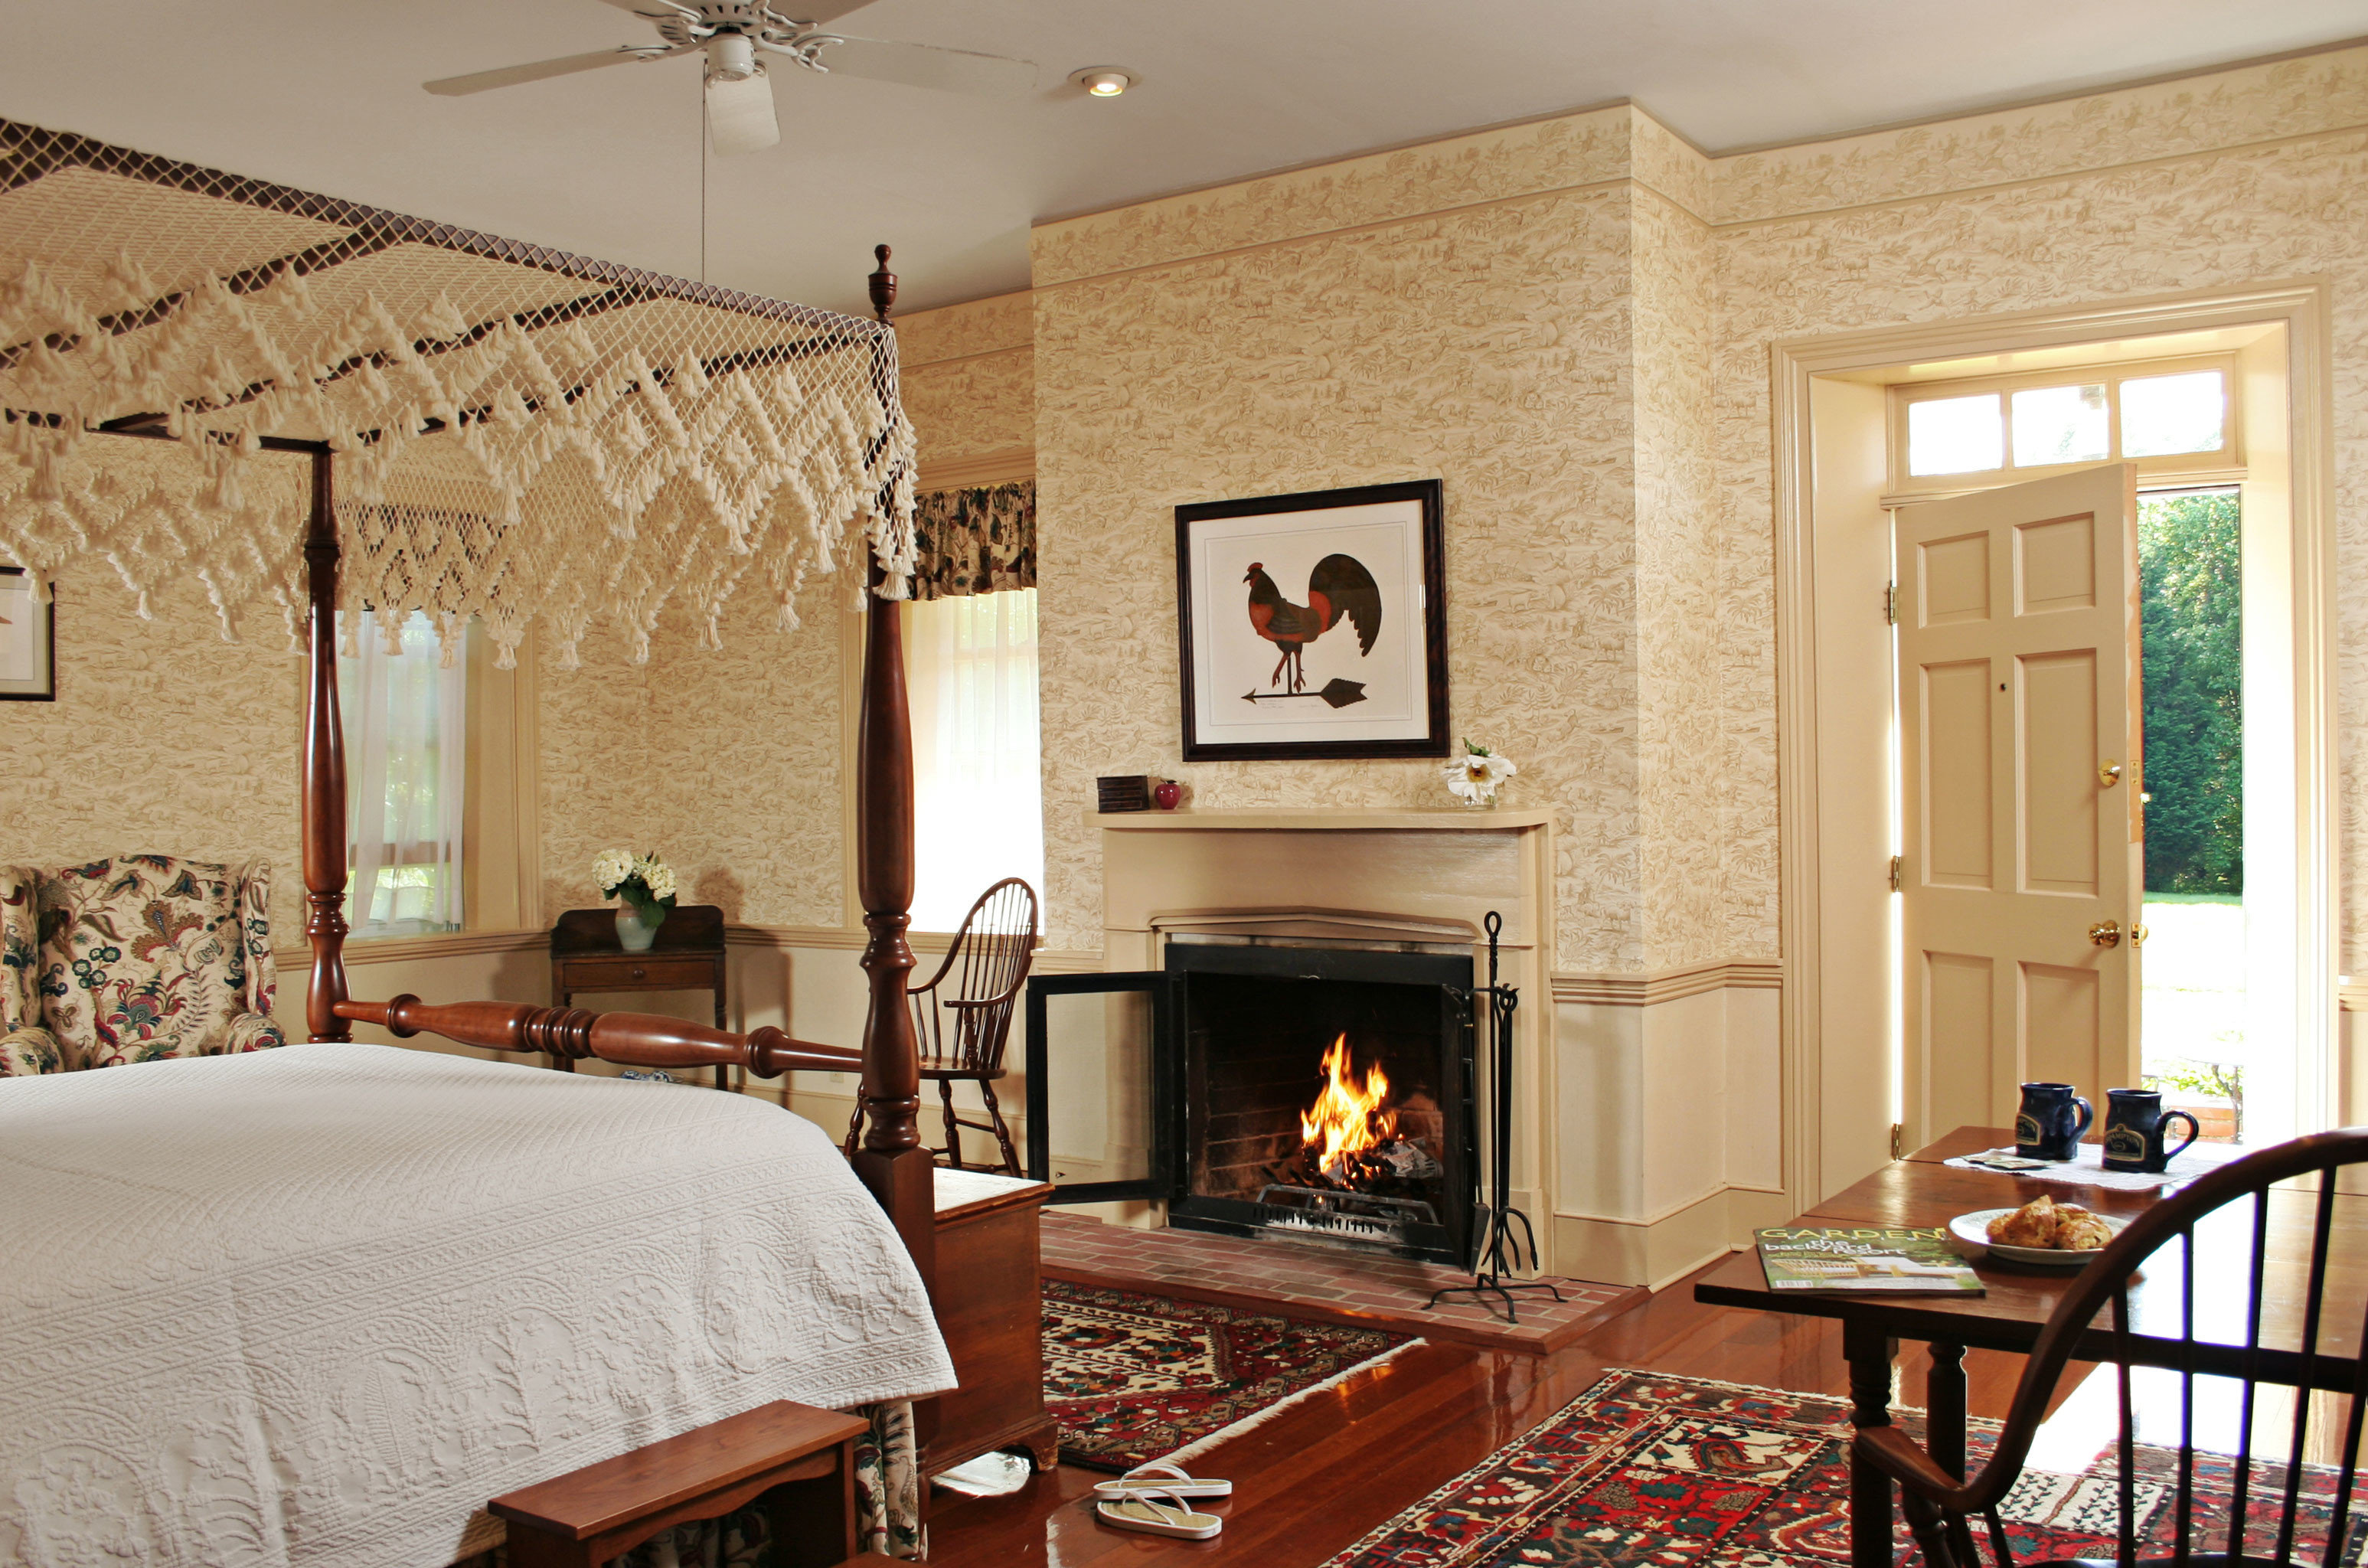 B&B Bedroom Classic Country Fireplace Inn Romantic fire property chair living room home hardwood cottage farmhouse Suite